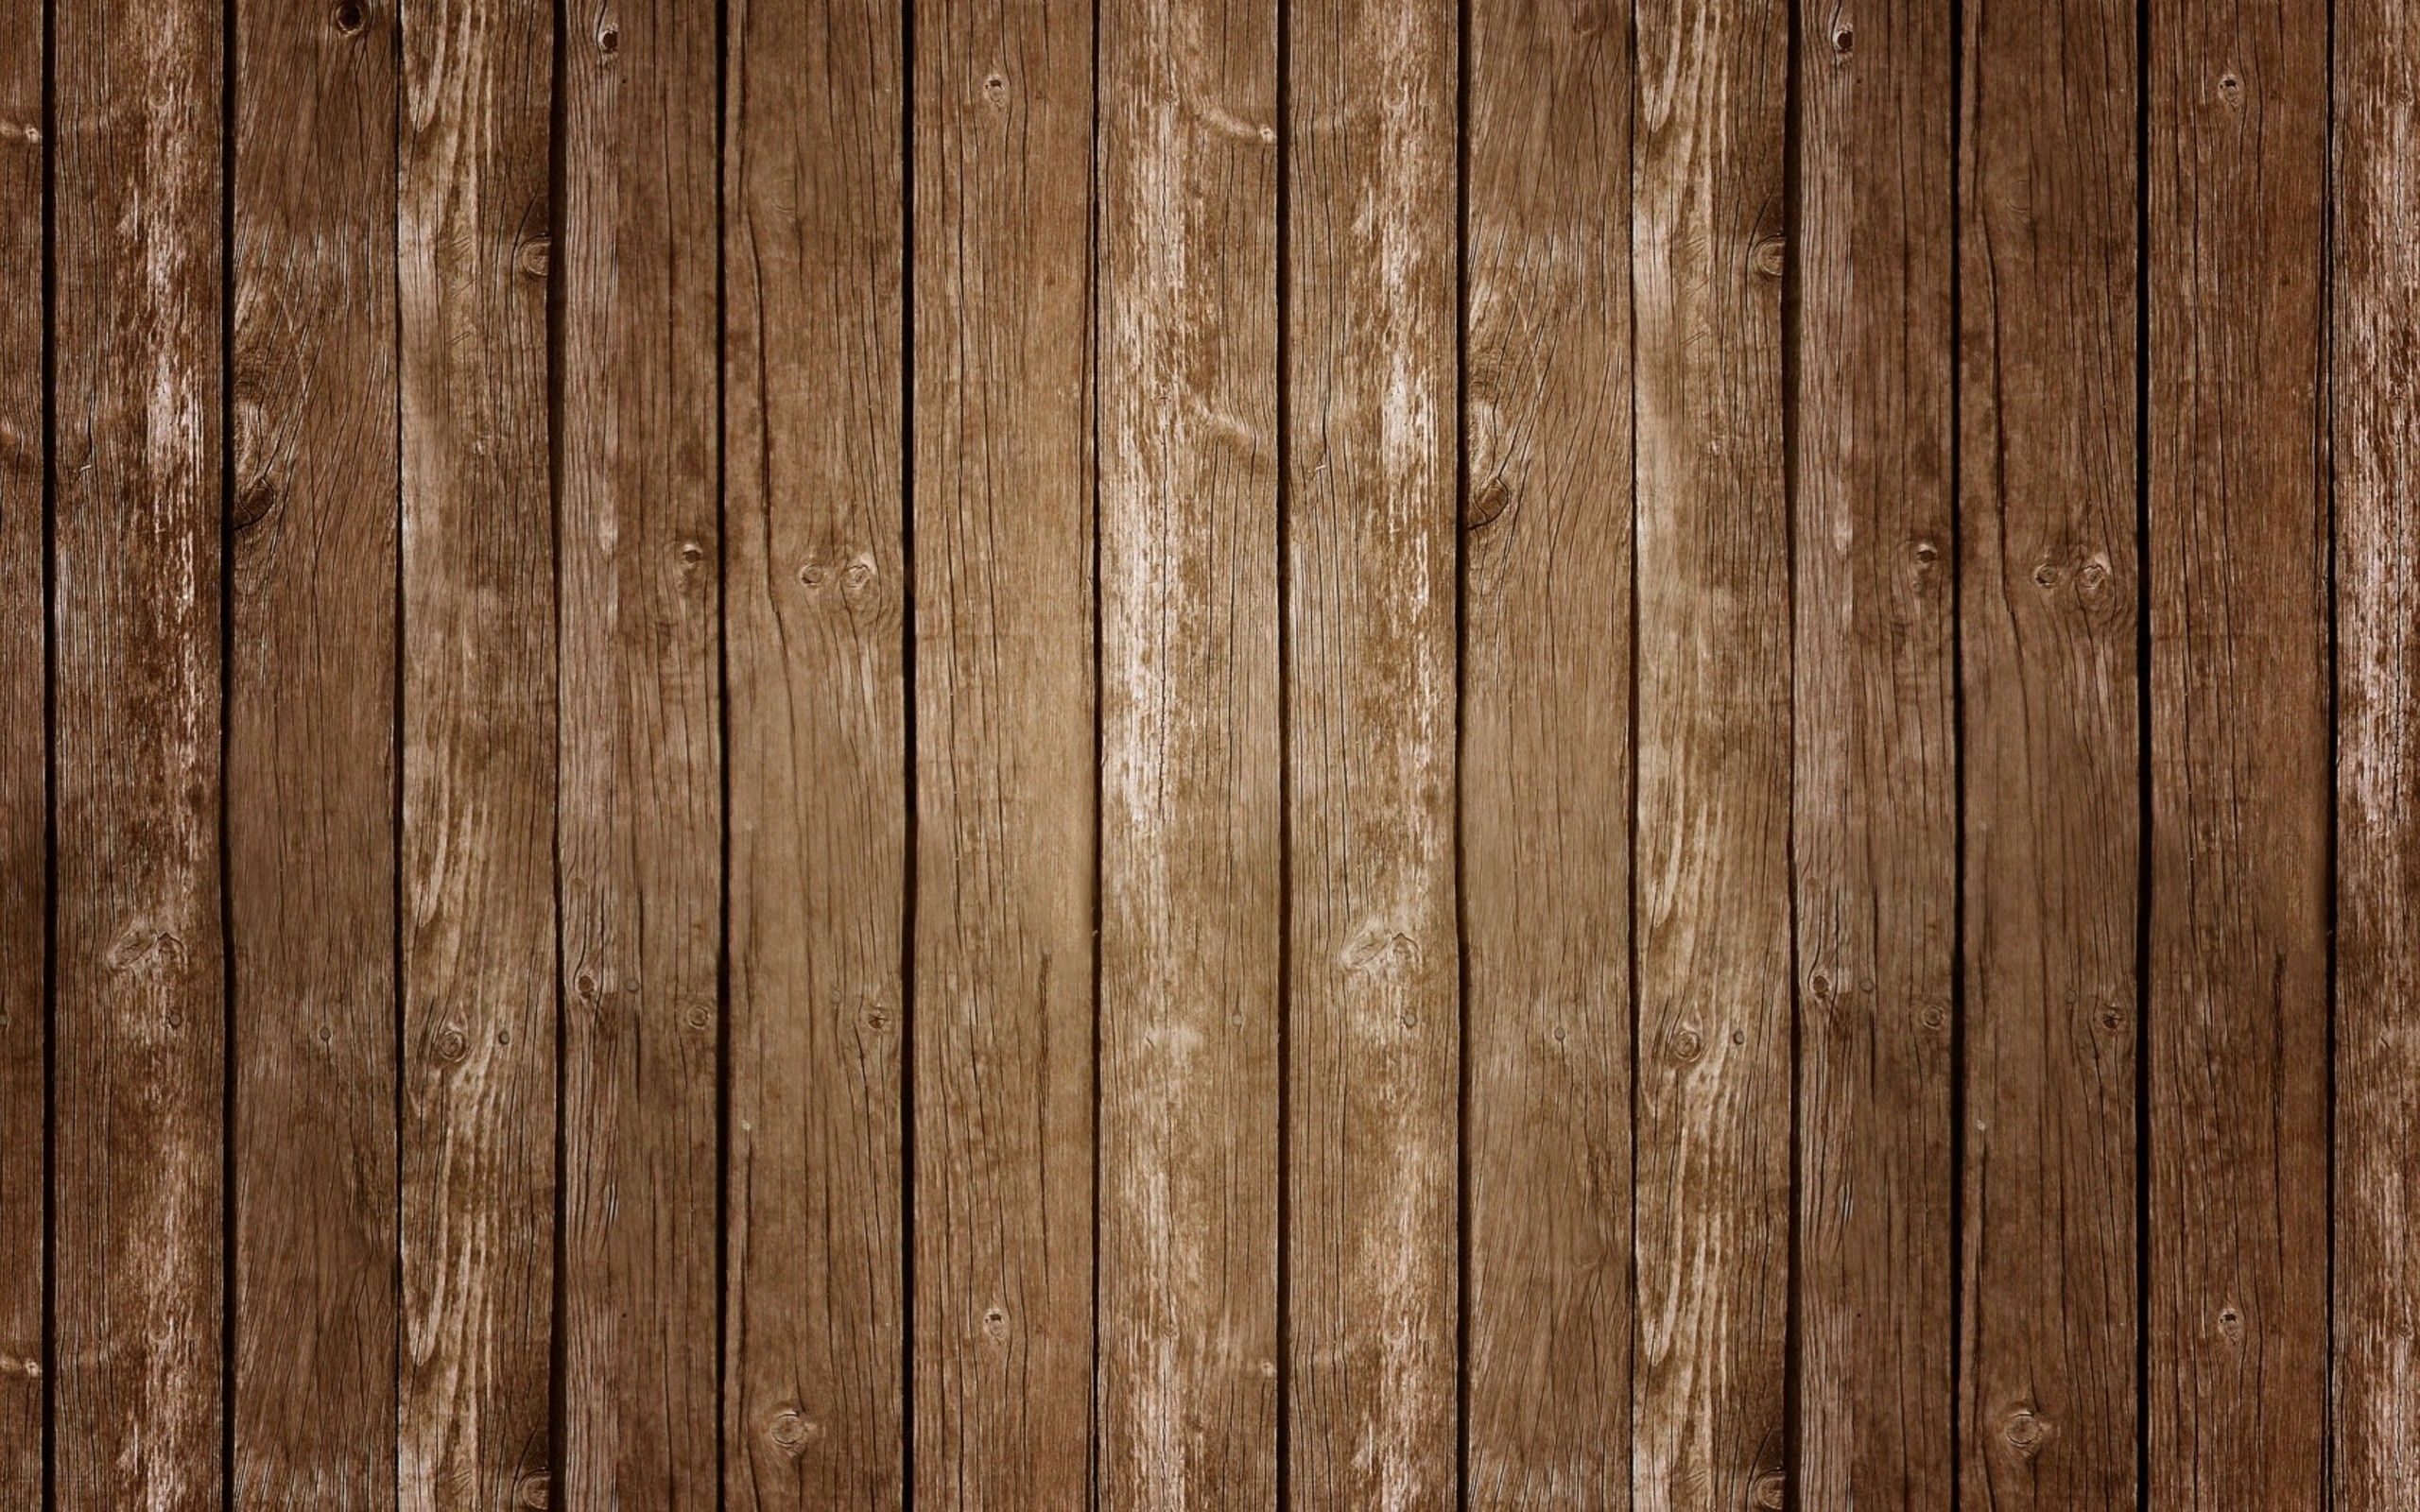 2560x1600  HD Wallpaper | Background ID:370799.  Pattern Wood